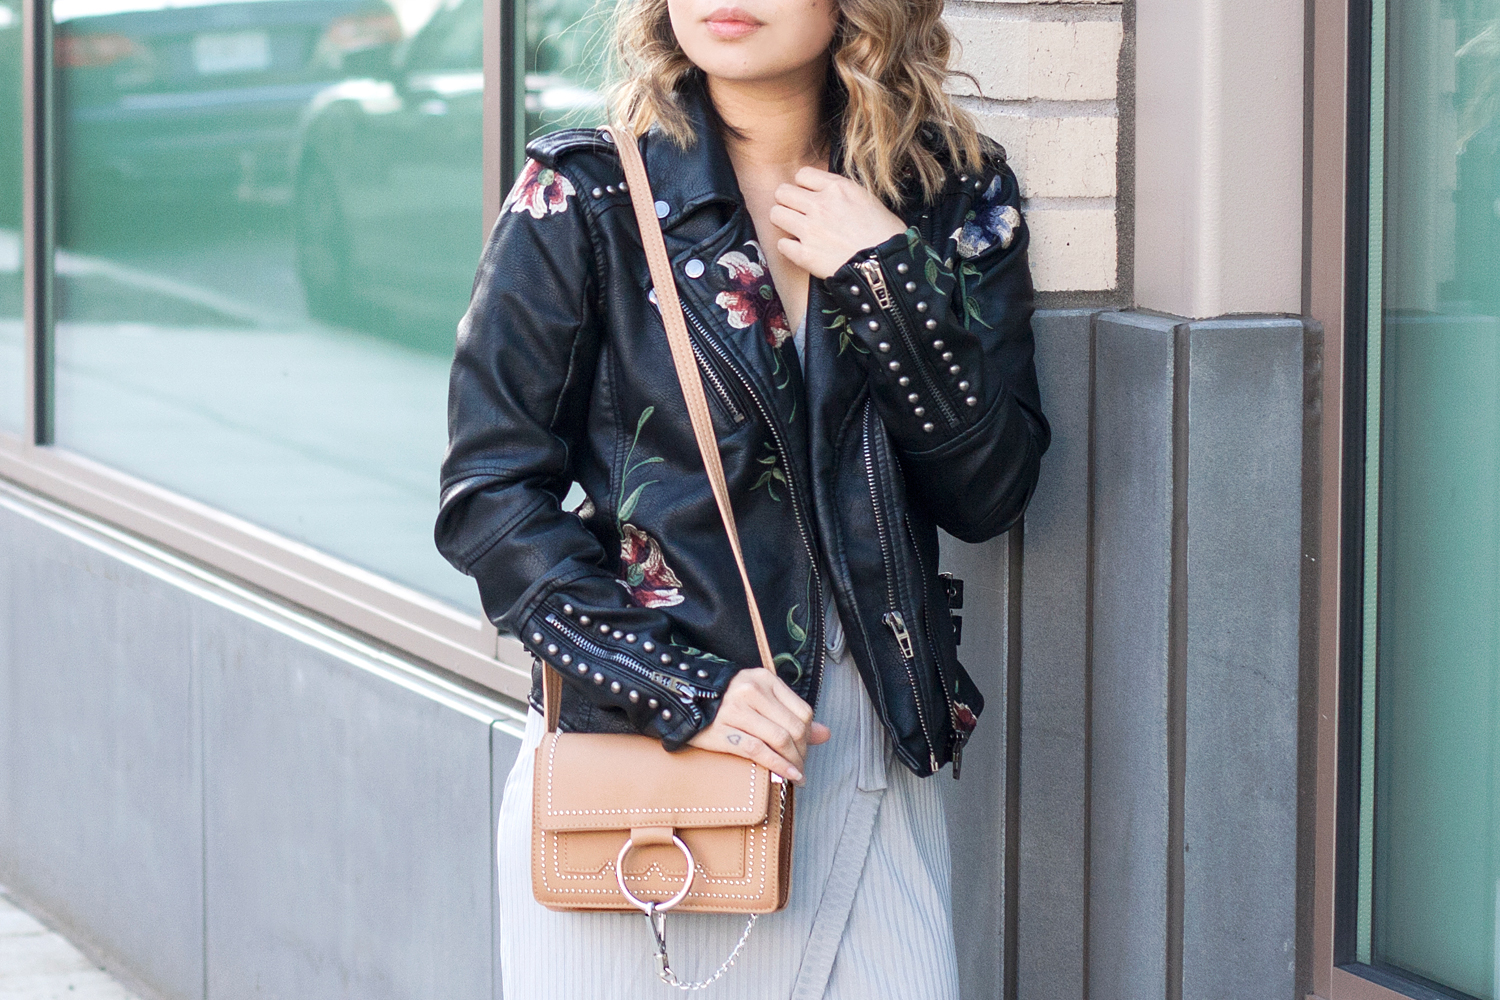 02-floral-studs-leatherjacket-travel-fashion-style